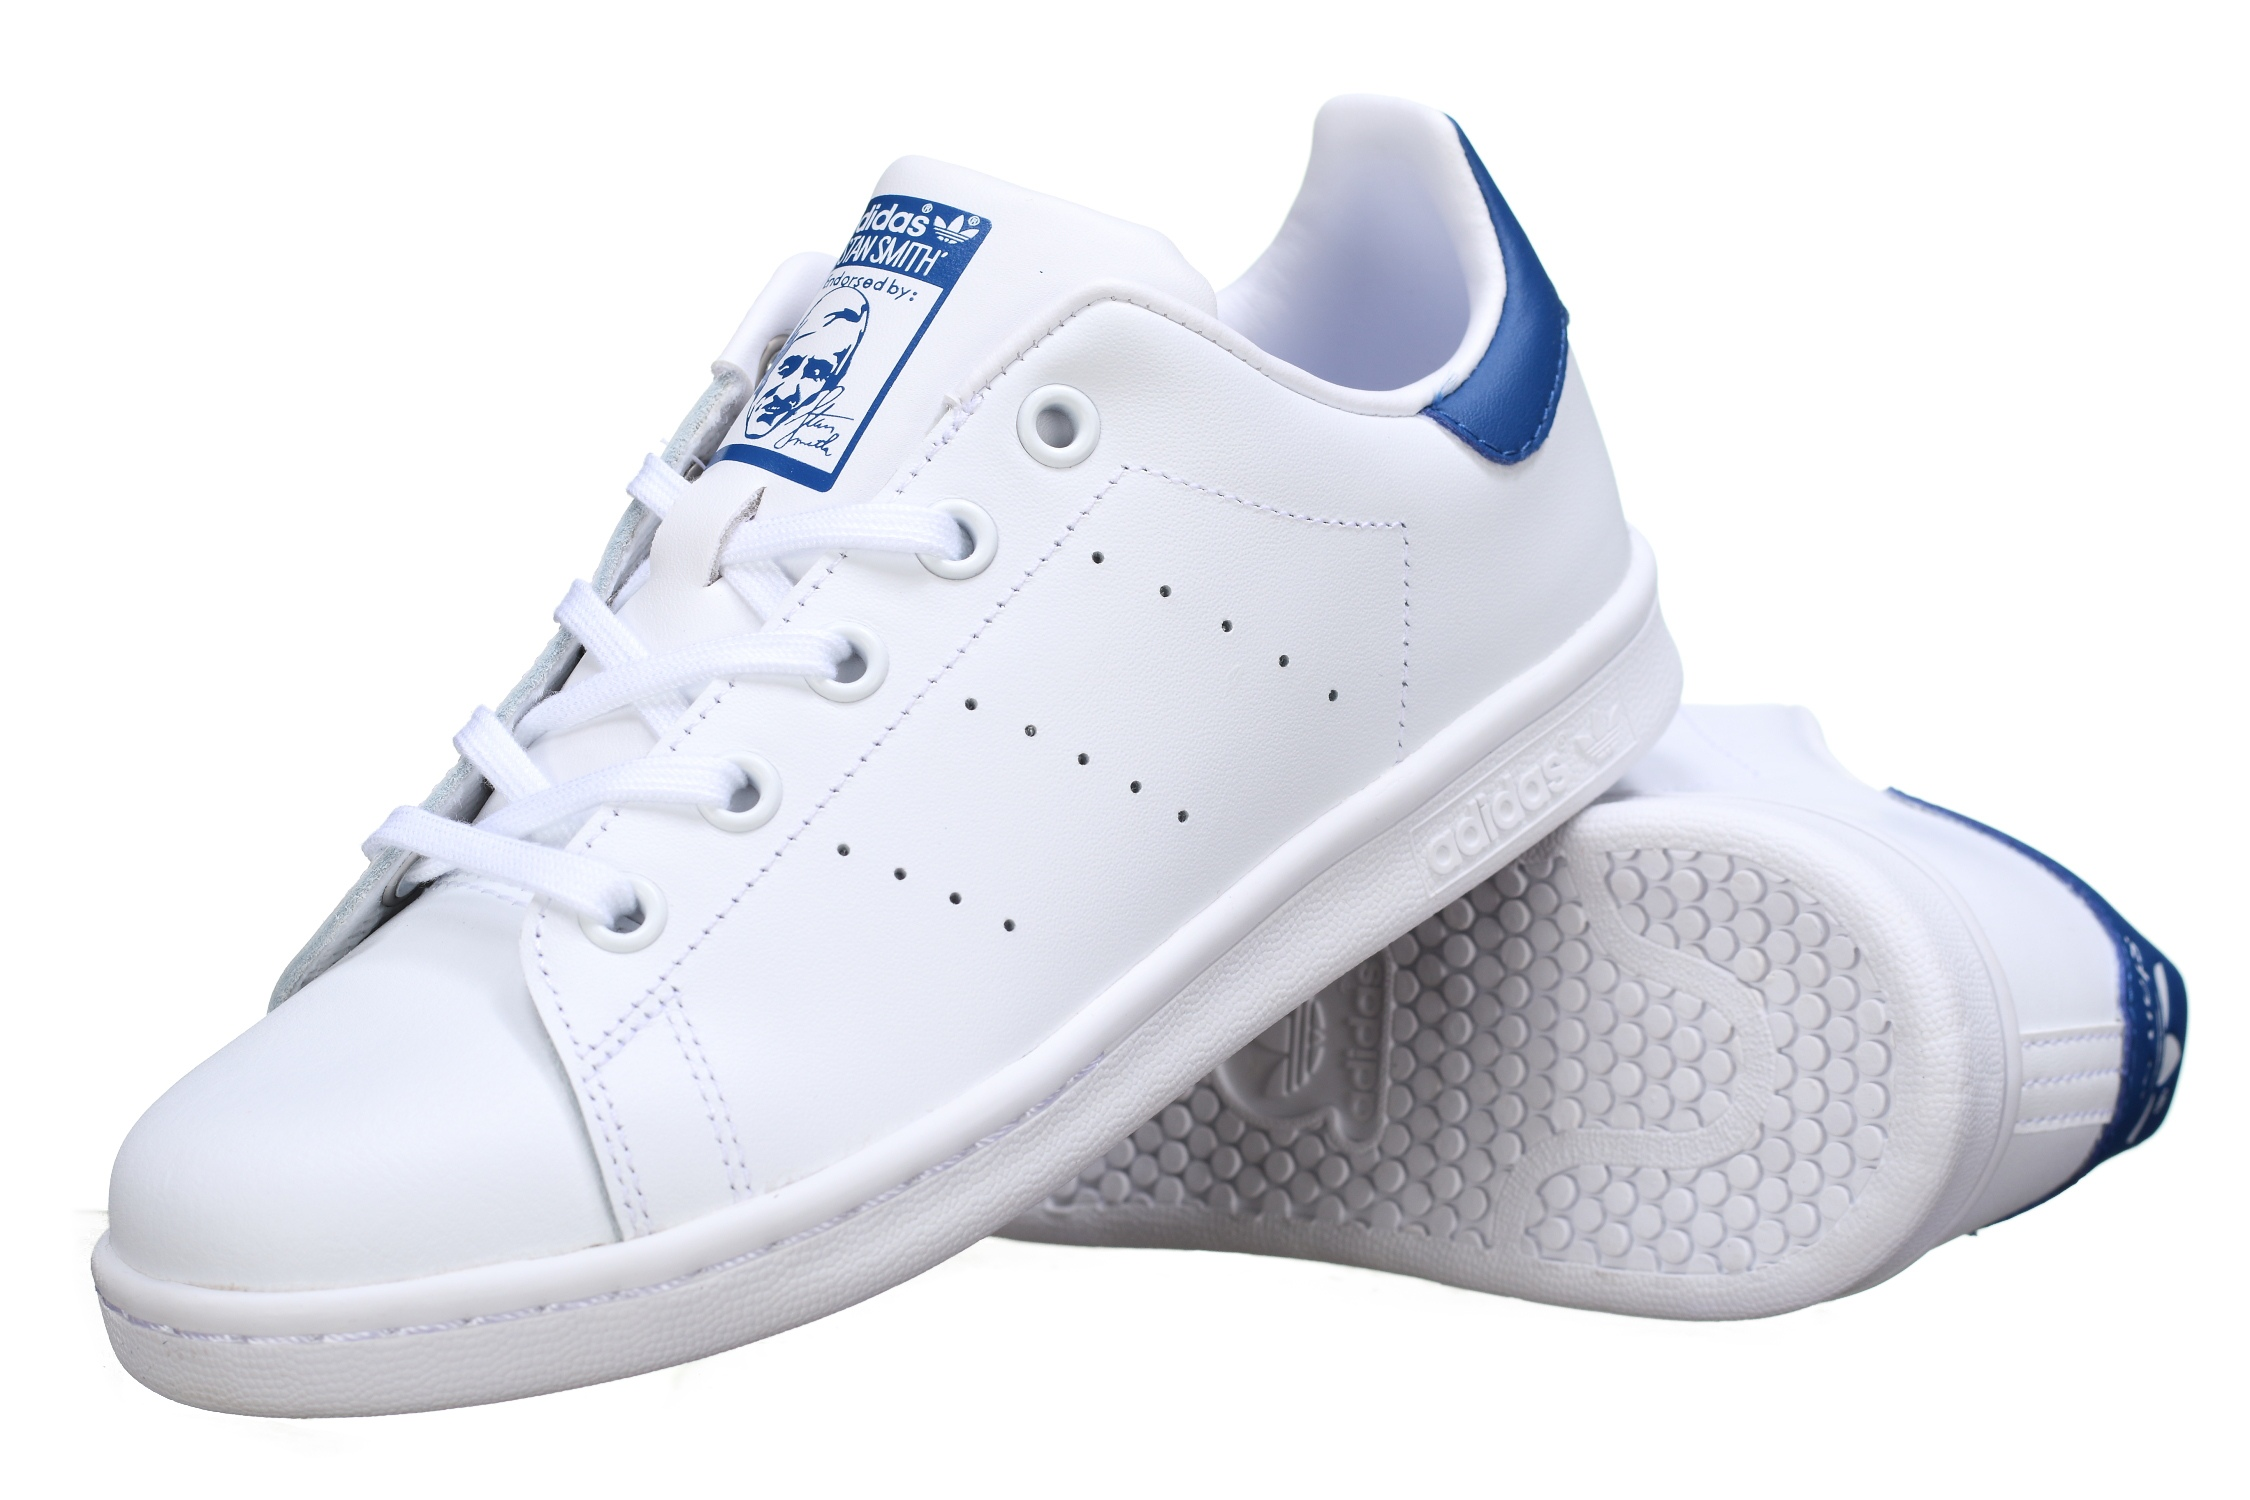 http://www.leadermode.com/128674/adidas-stan-smith-c-bb0694-blanc-bleu.jpg